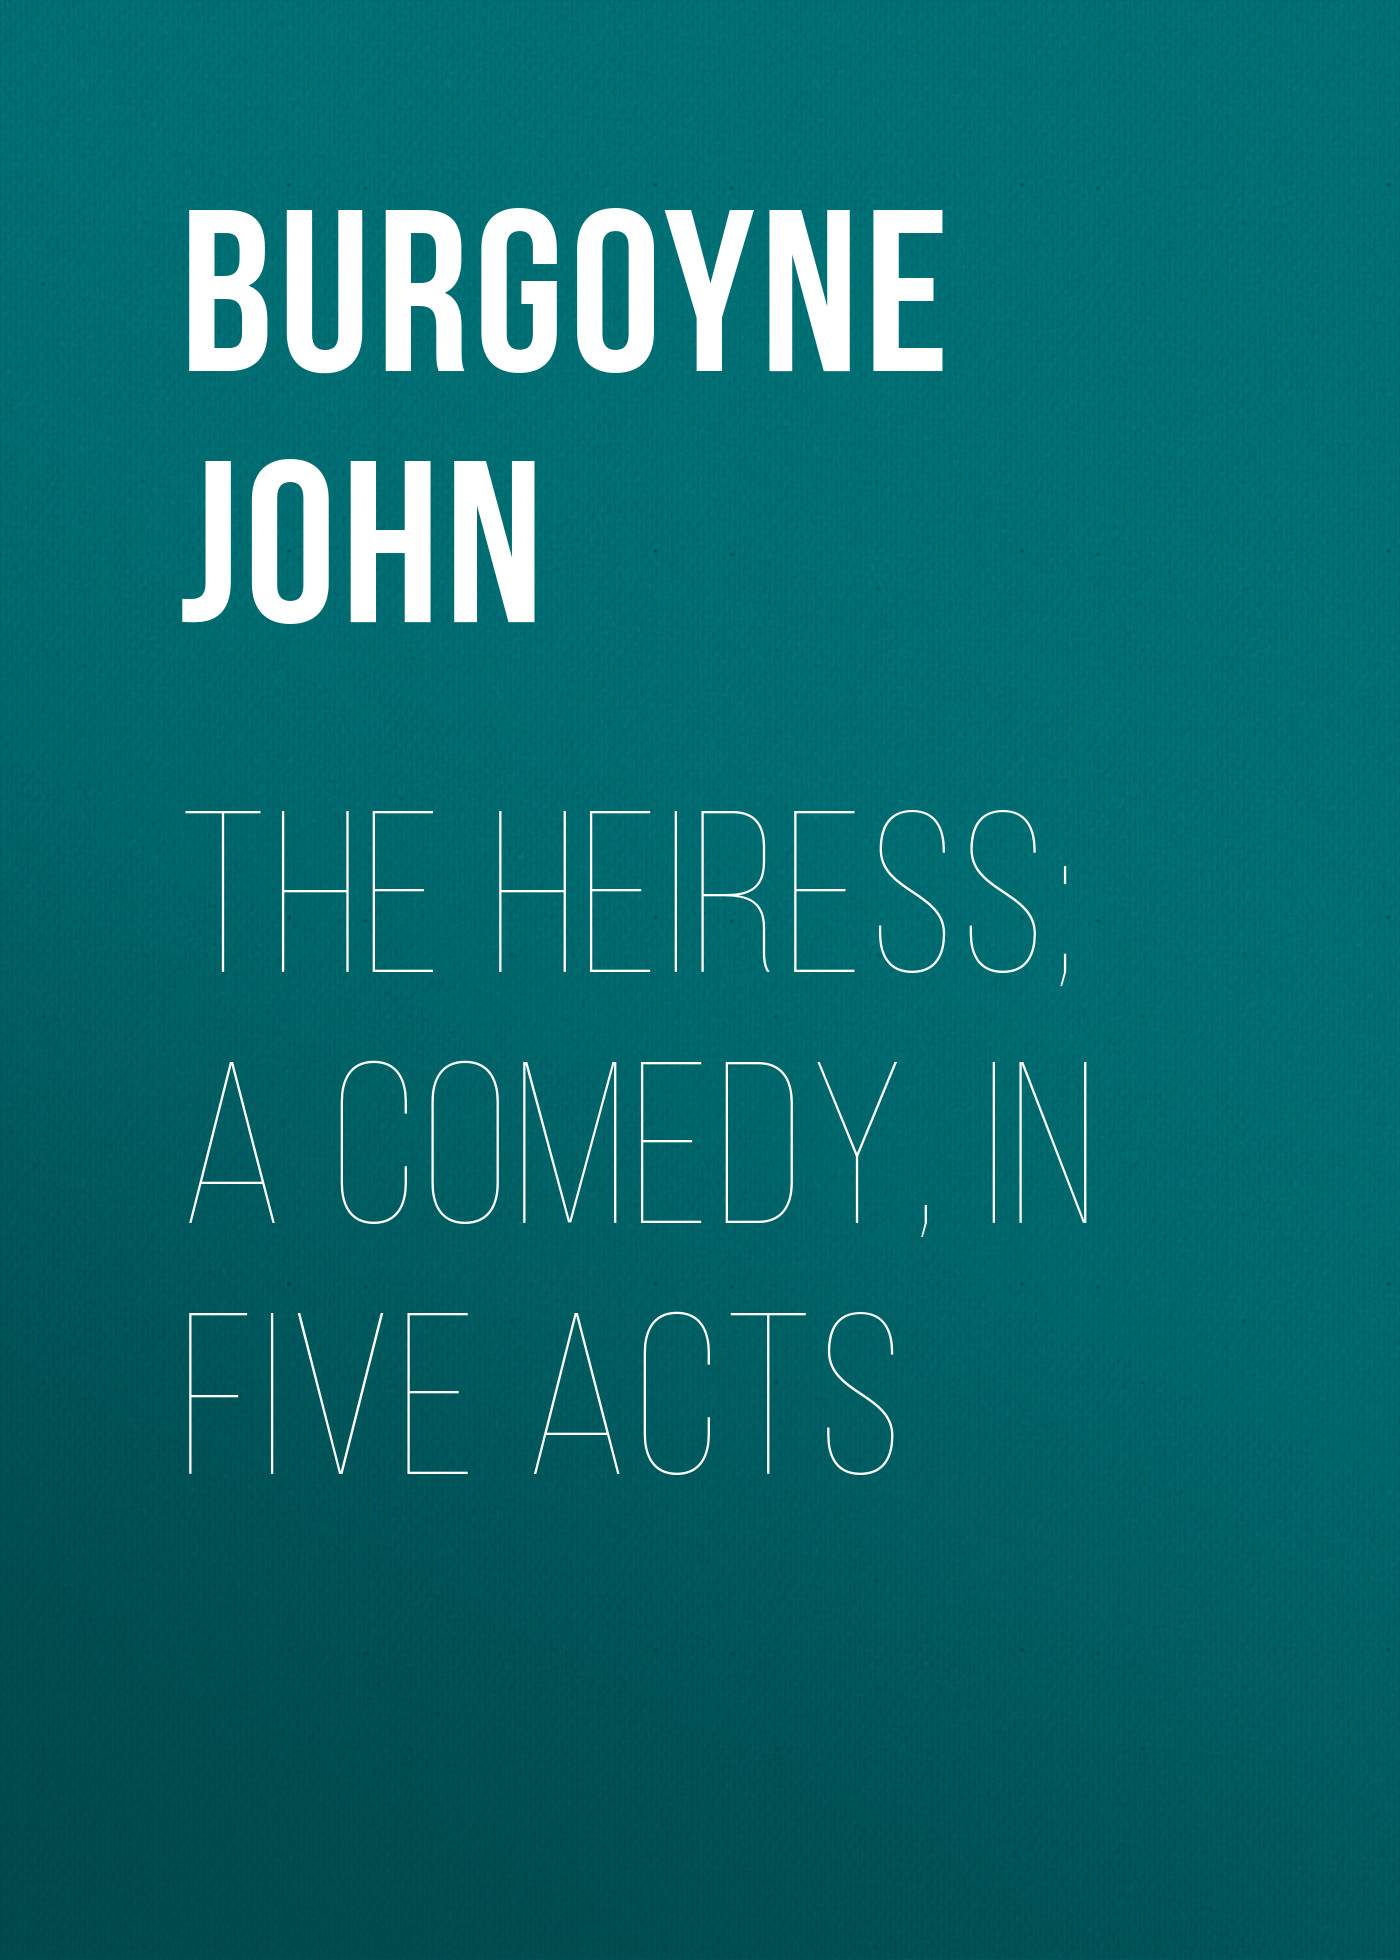 Burgoyne John The Heiress; a comedy, in five acts thomas s denison the irish linen peddler a farce in two acts